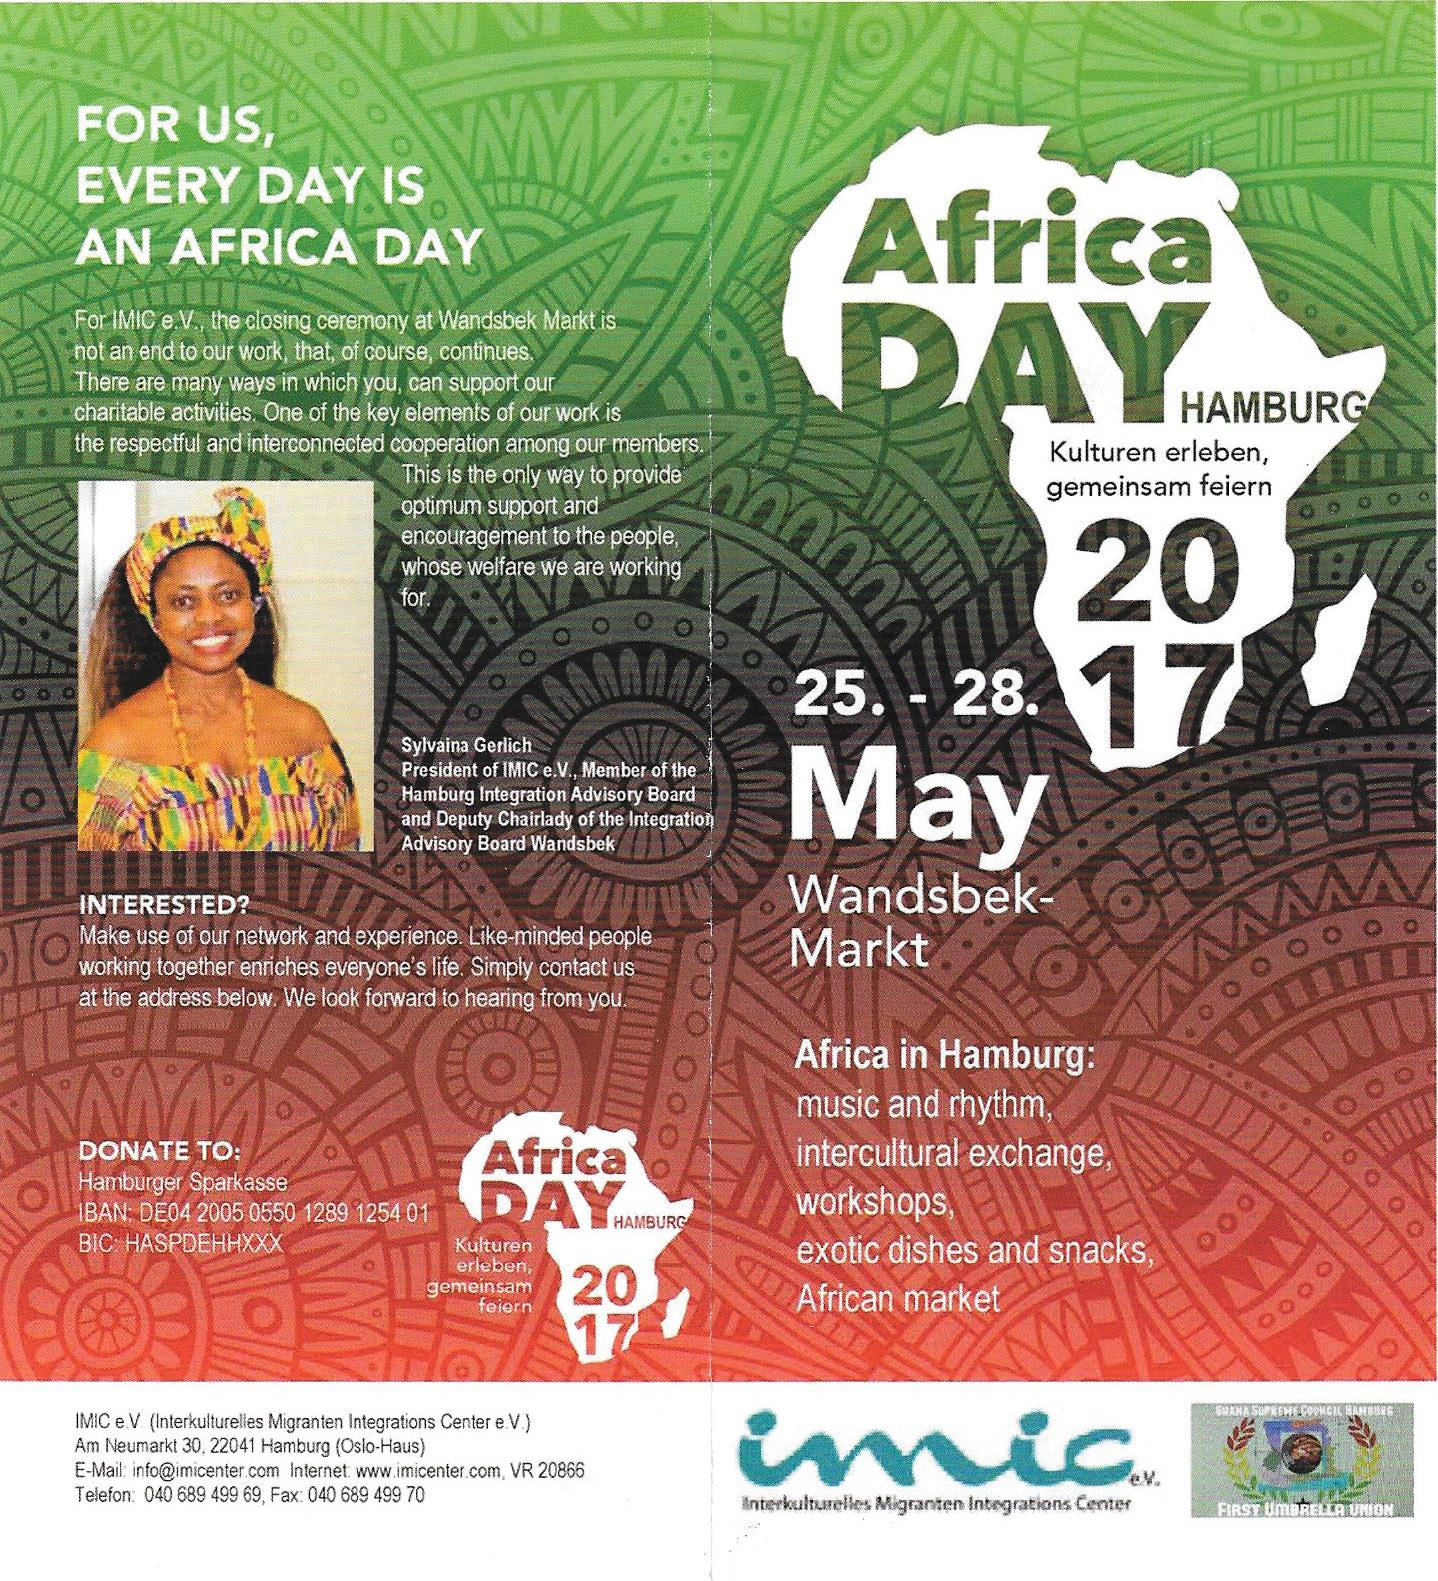 Africa Day - Hamburg, Germany